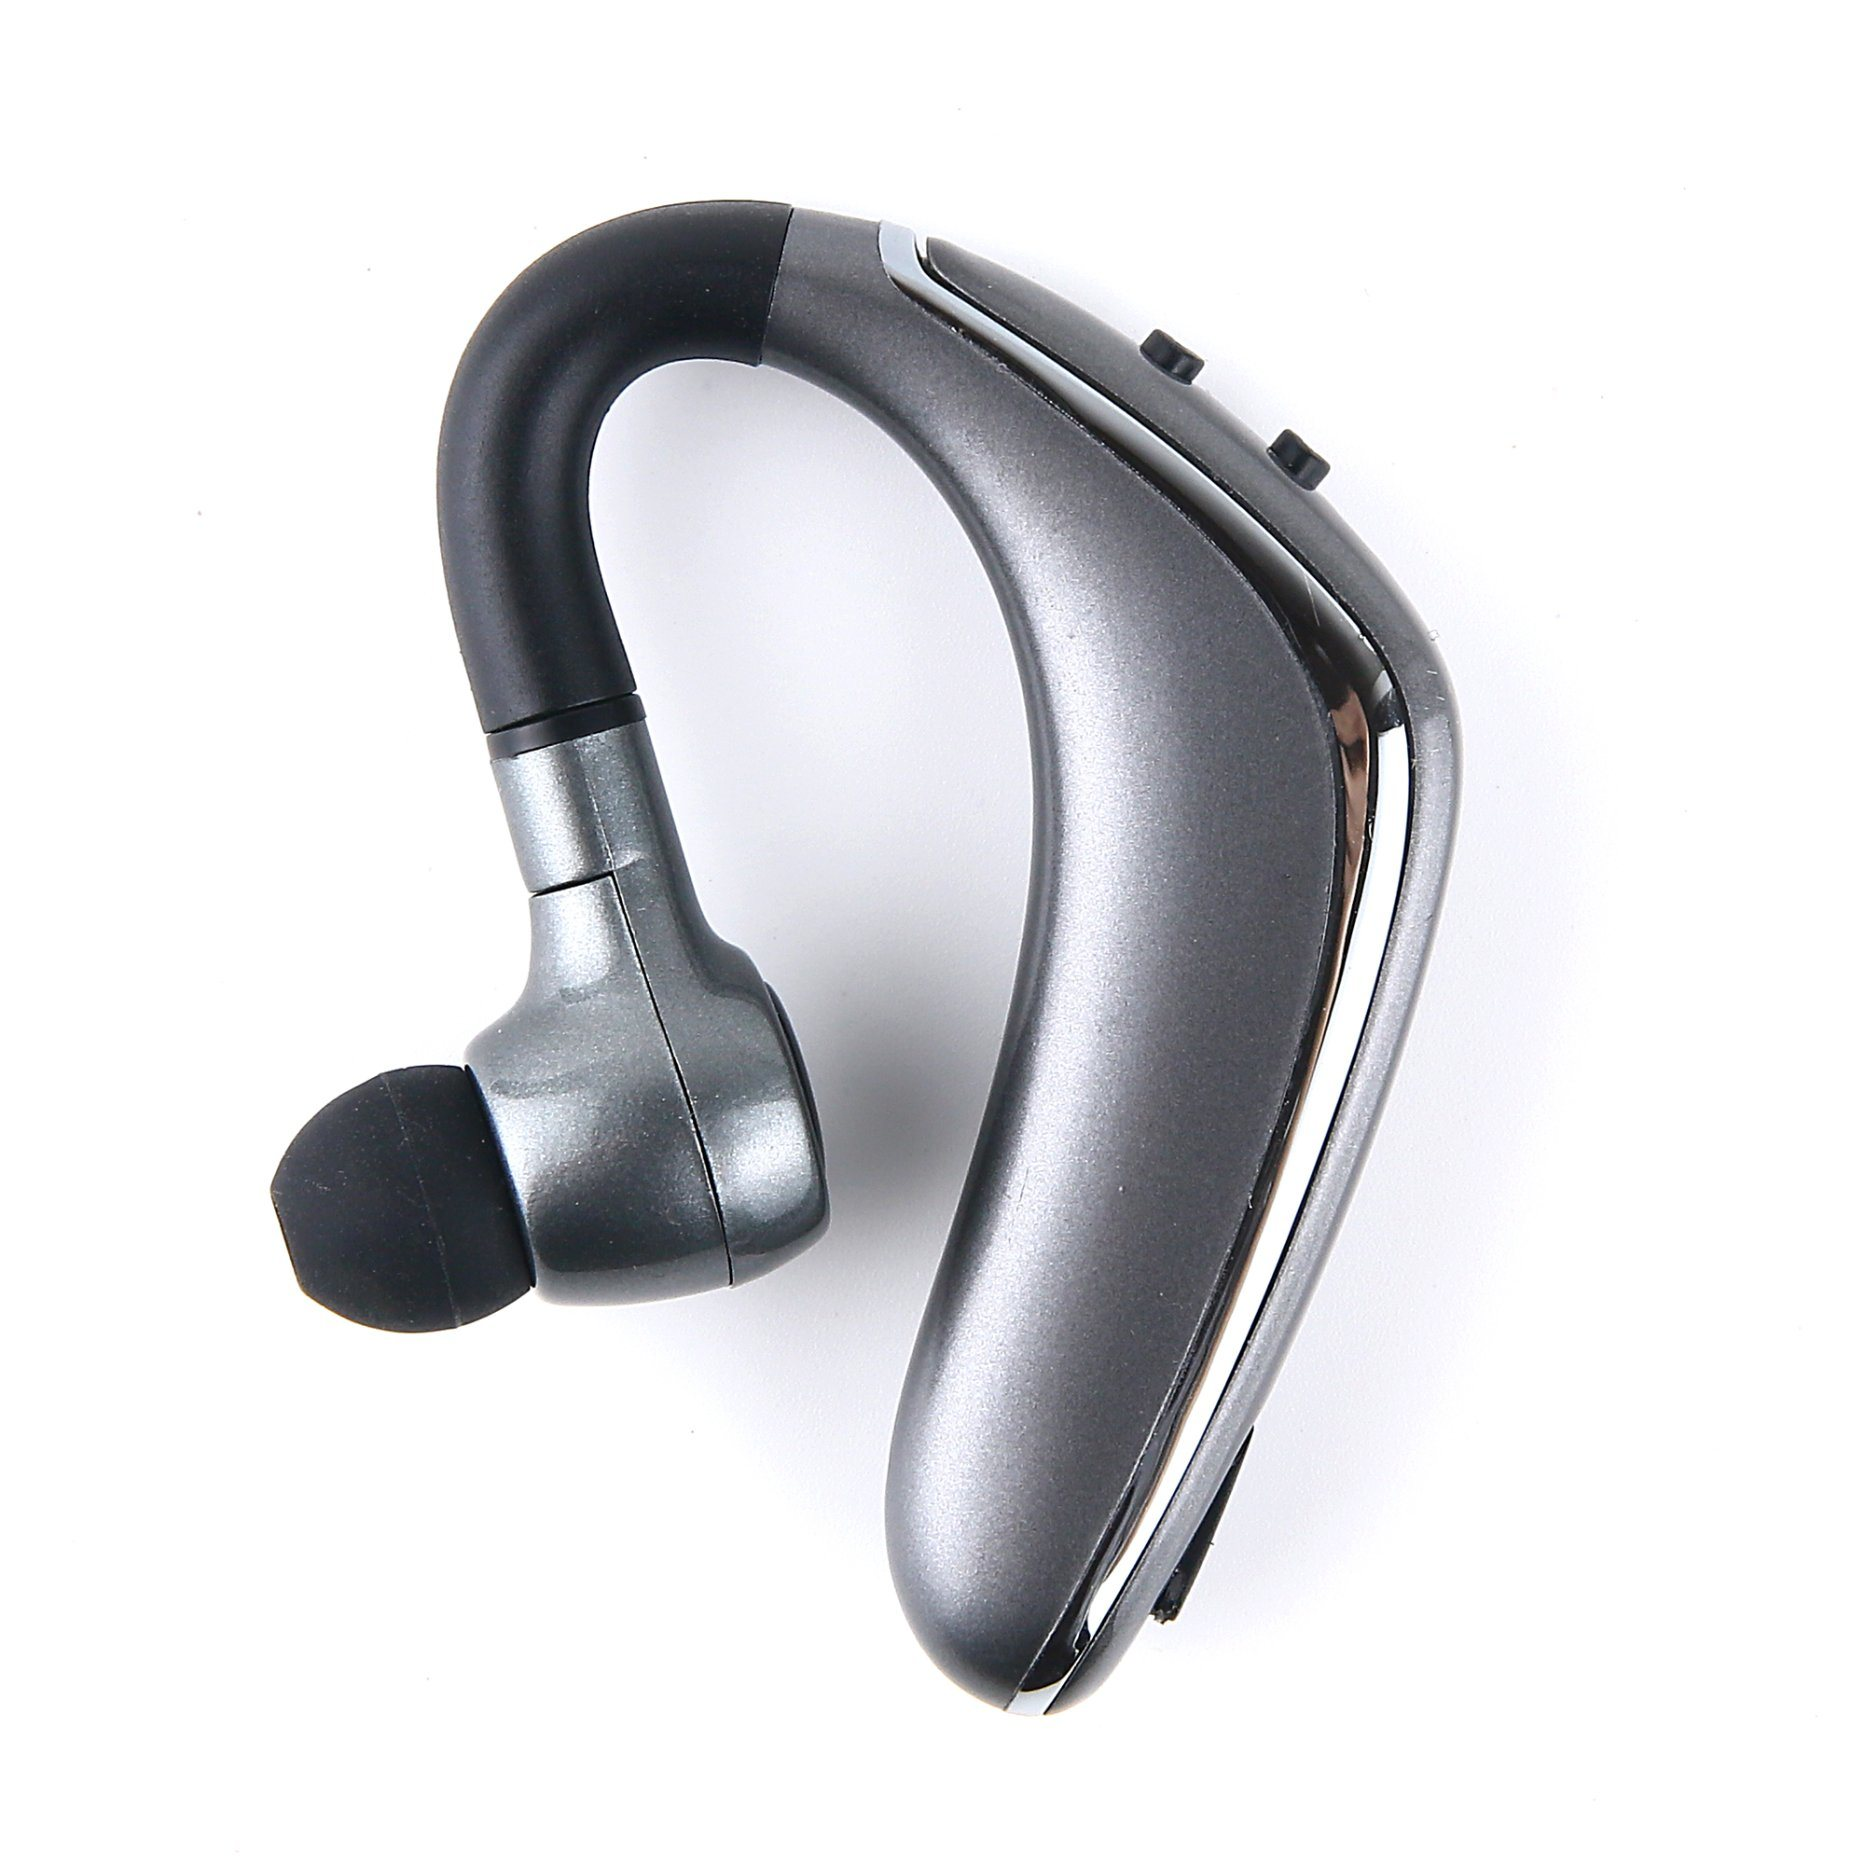 China Wholesale Price Wireless Headset Bluetooth 5 0 Handsfree Mini Earbud Earpiece Earhook With Microphone Hd Call Ipx4 Waterproof Business Earphone 36 Ohm China Earhook Earbuds